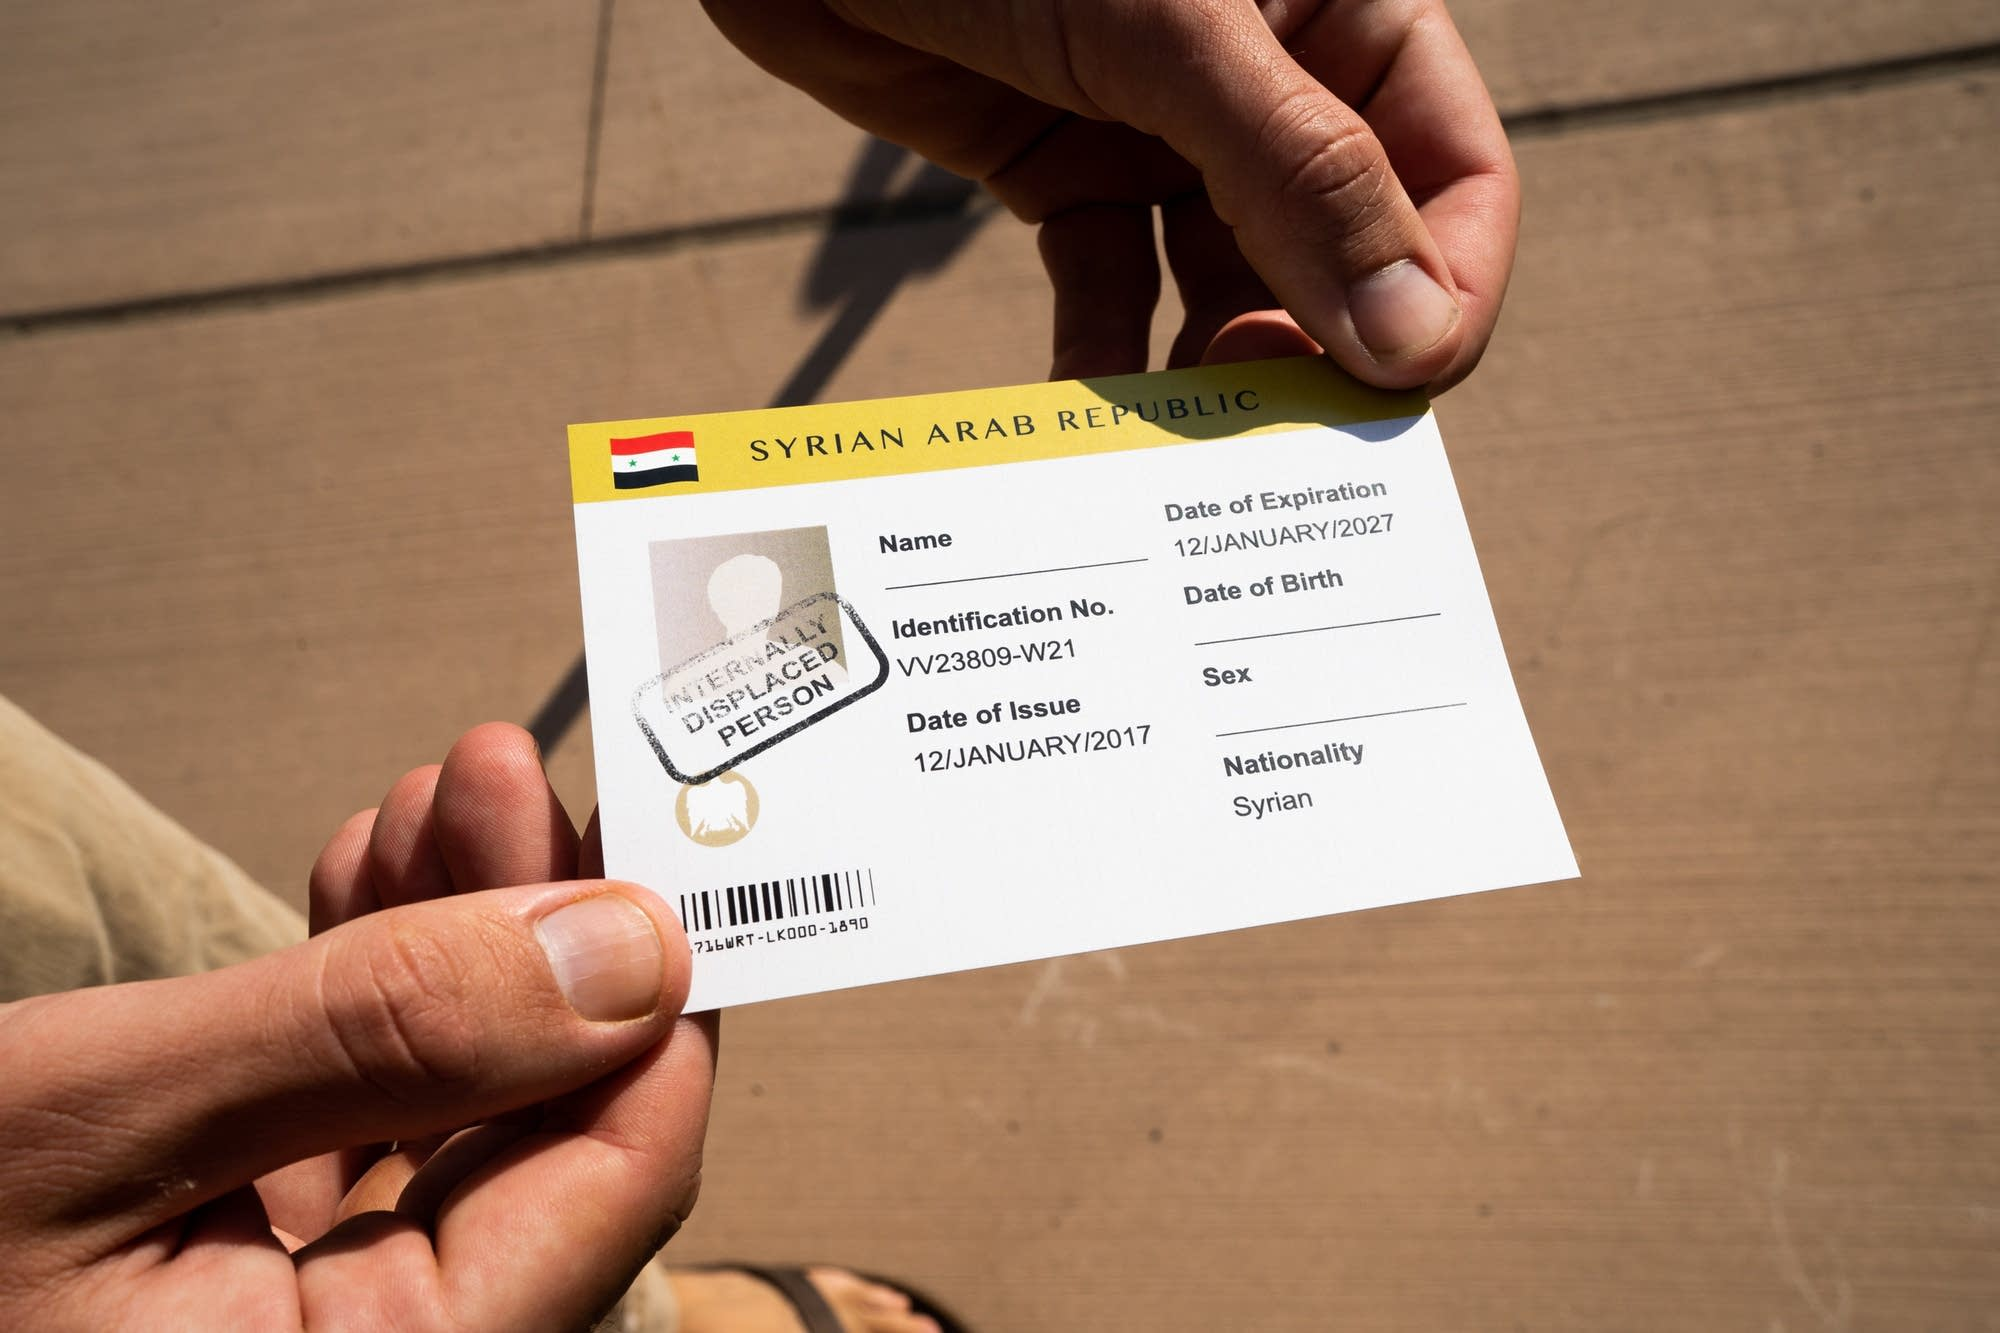 A Doctors Without Borders guide holds up a mock ID card.